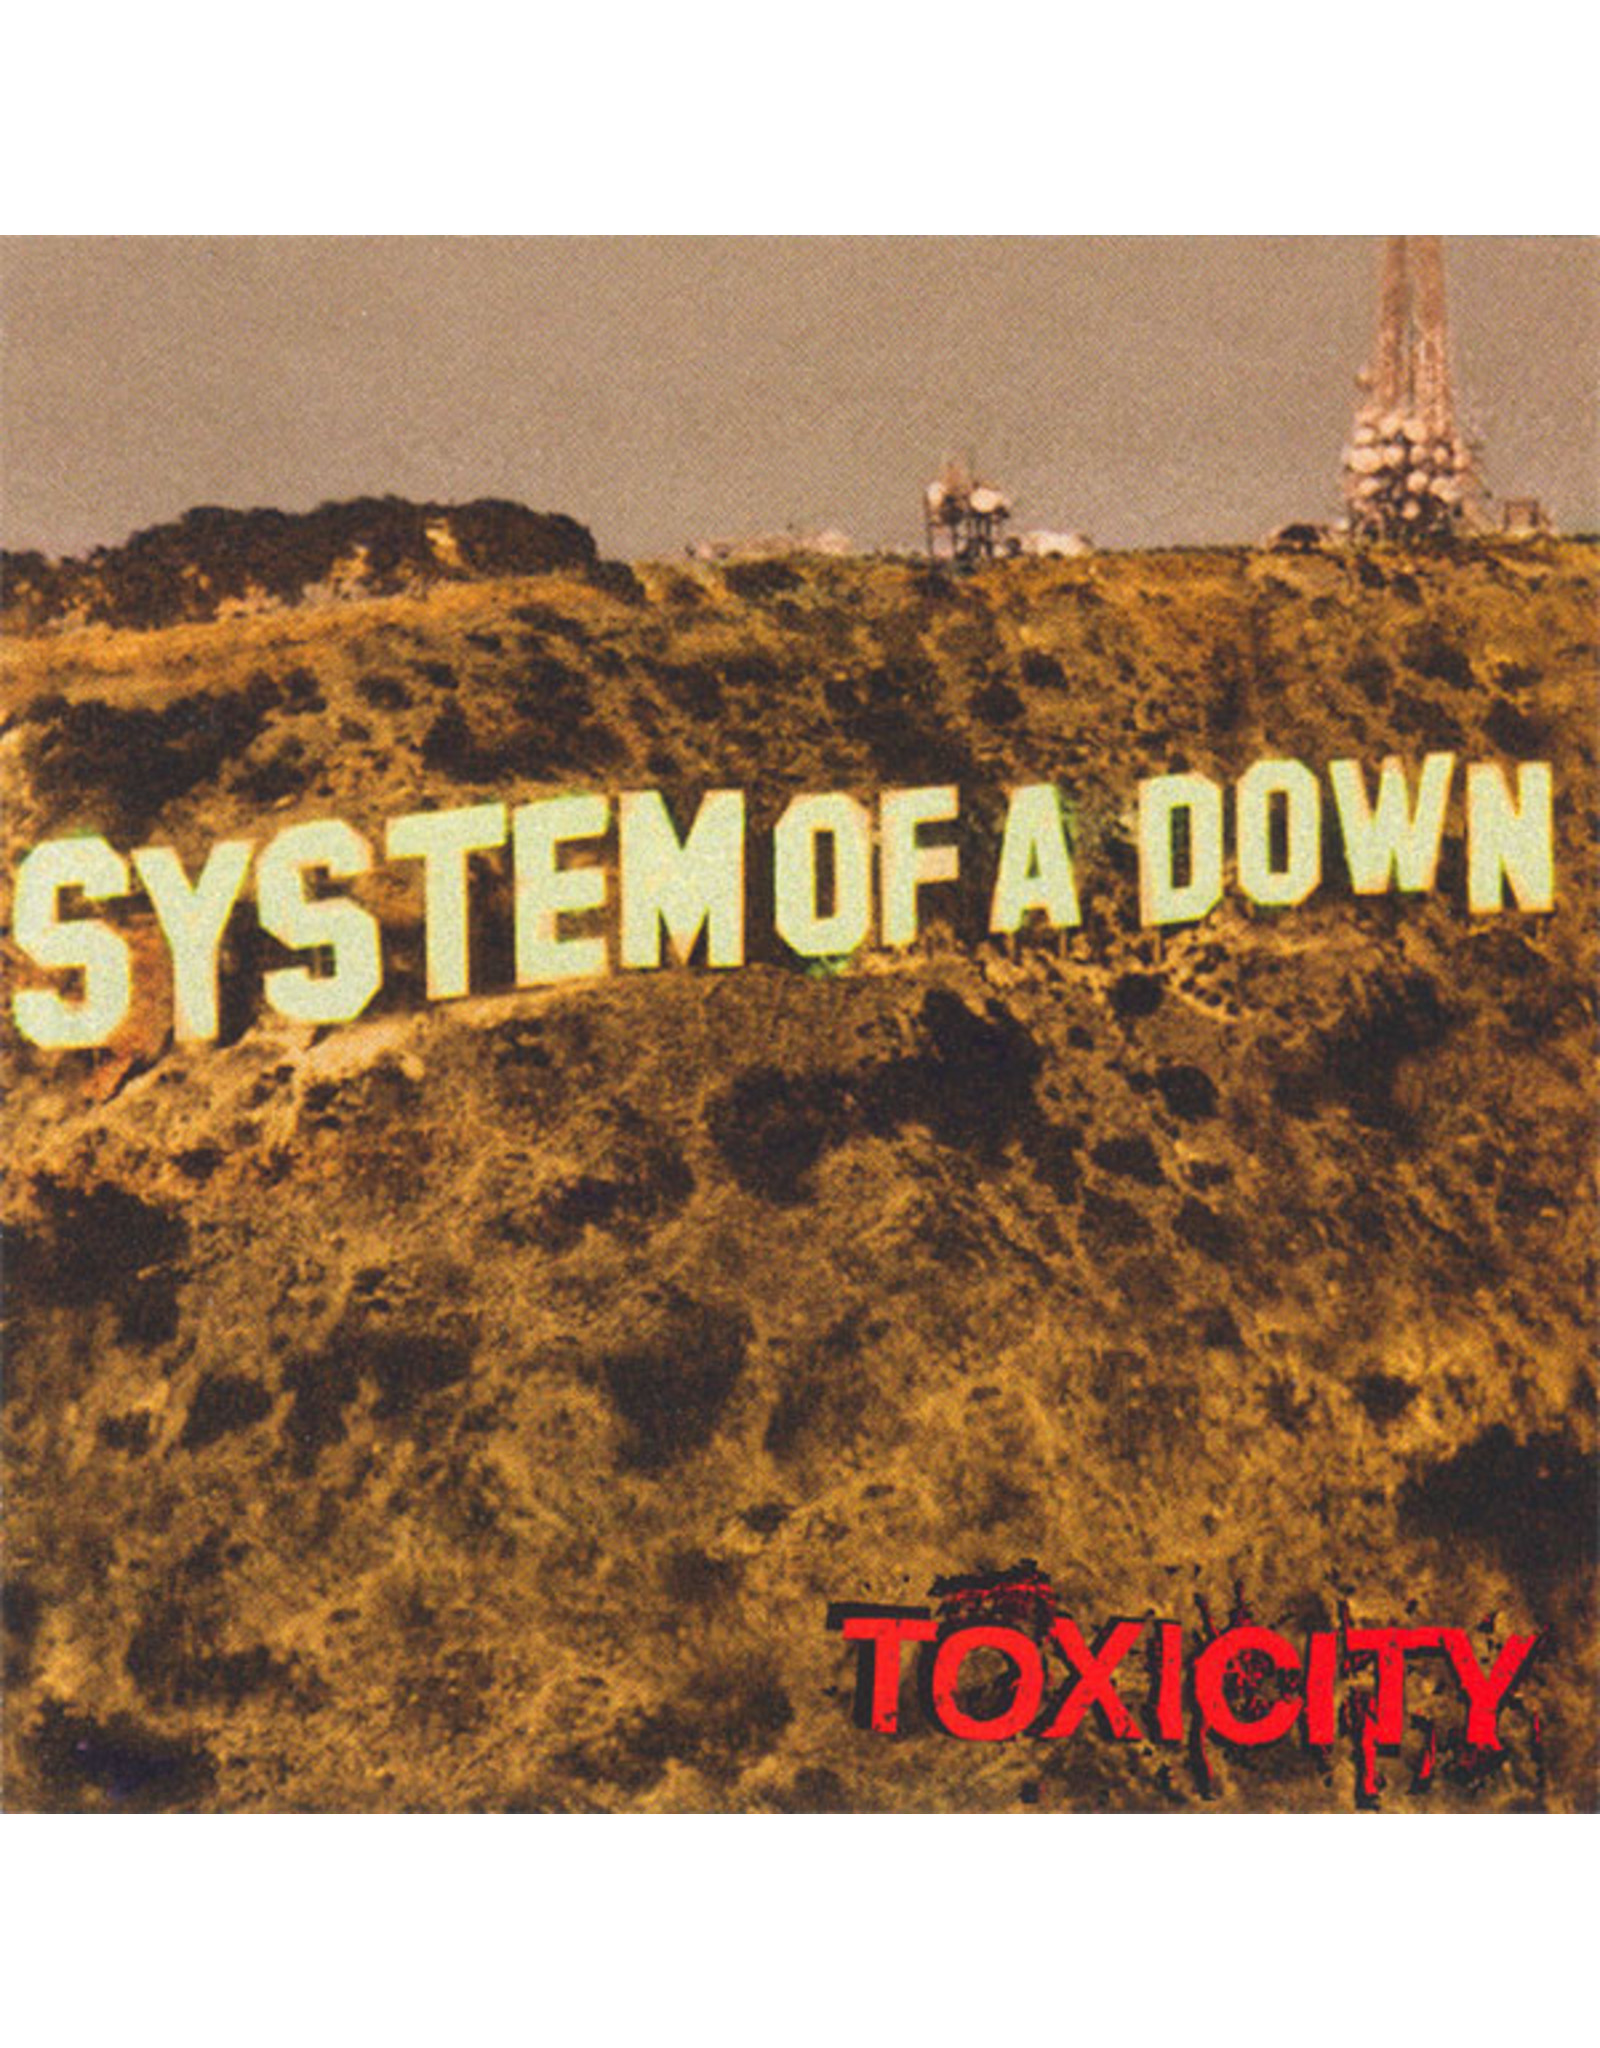 New Vinyl System Of A Down - Toxicity LP